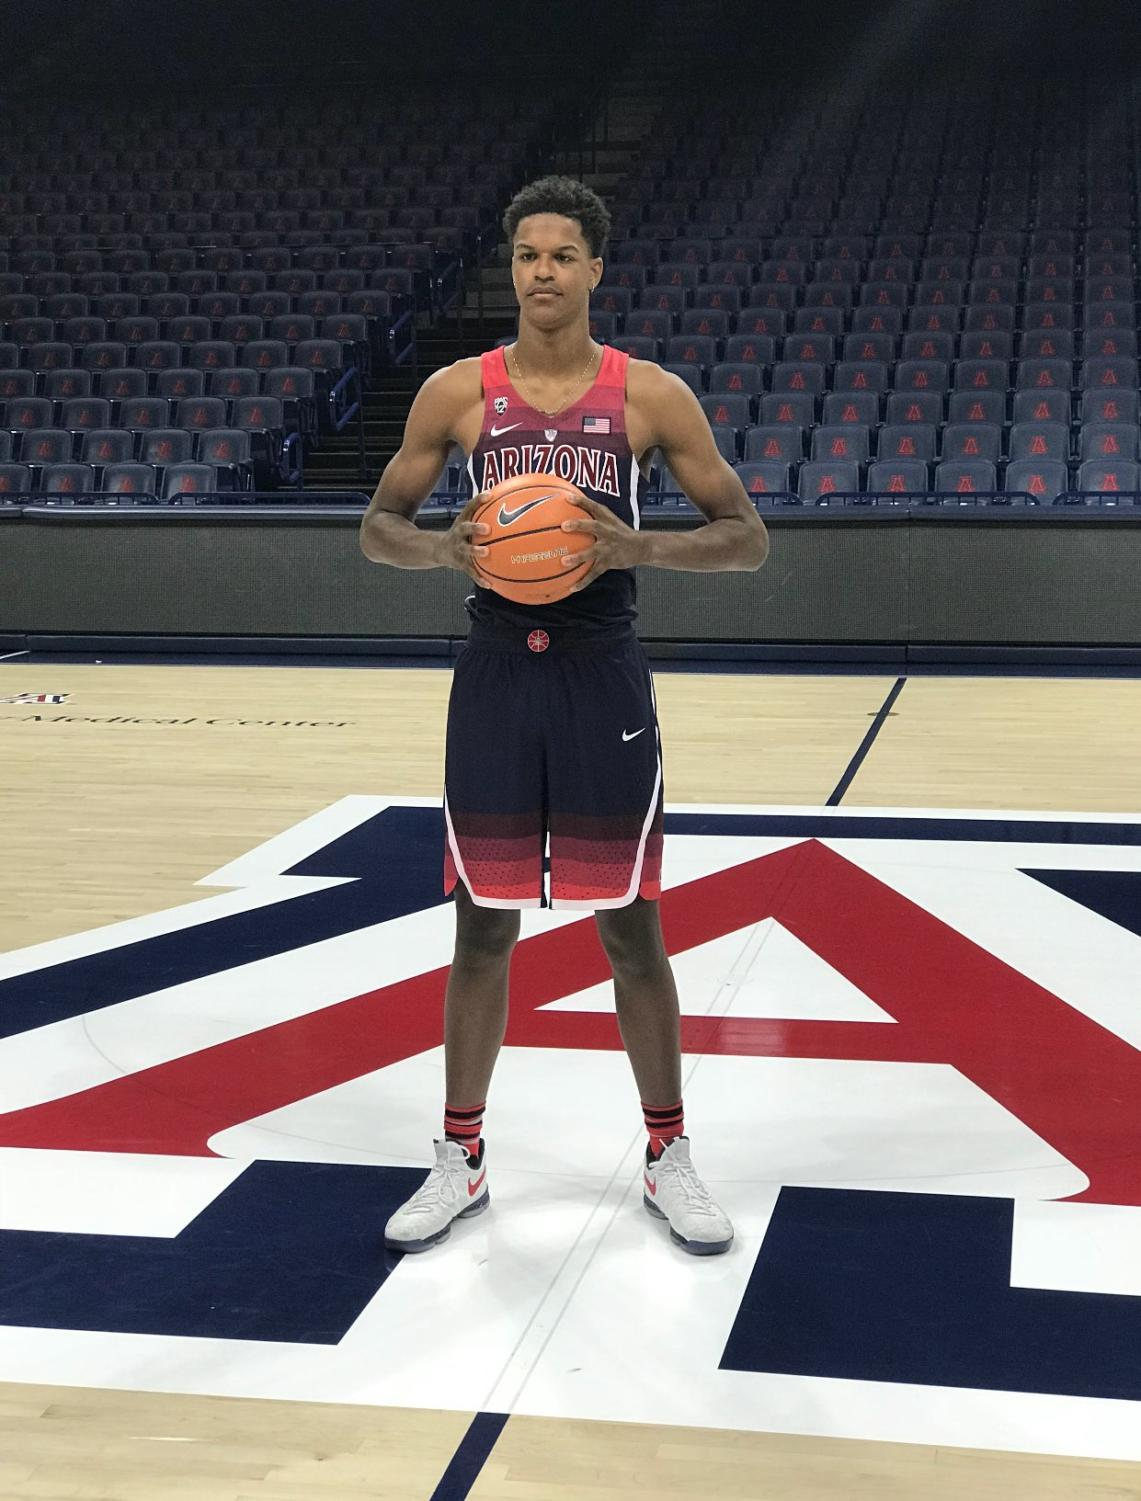 Shaquille ONeals son Shareef will play college basketball in his home state after committing to join UCLA The 18yearold from the Crossroads